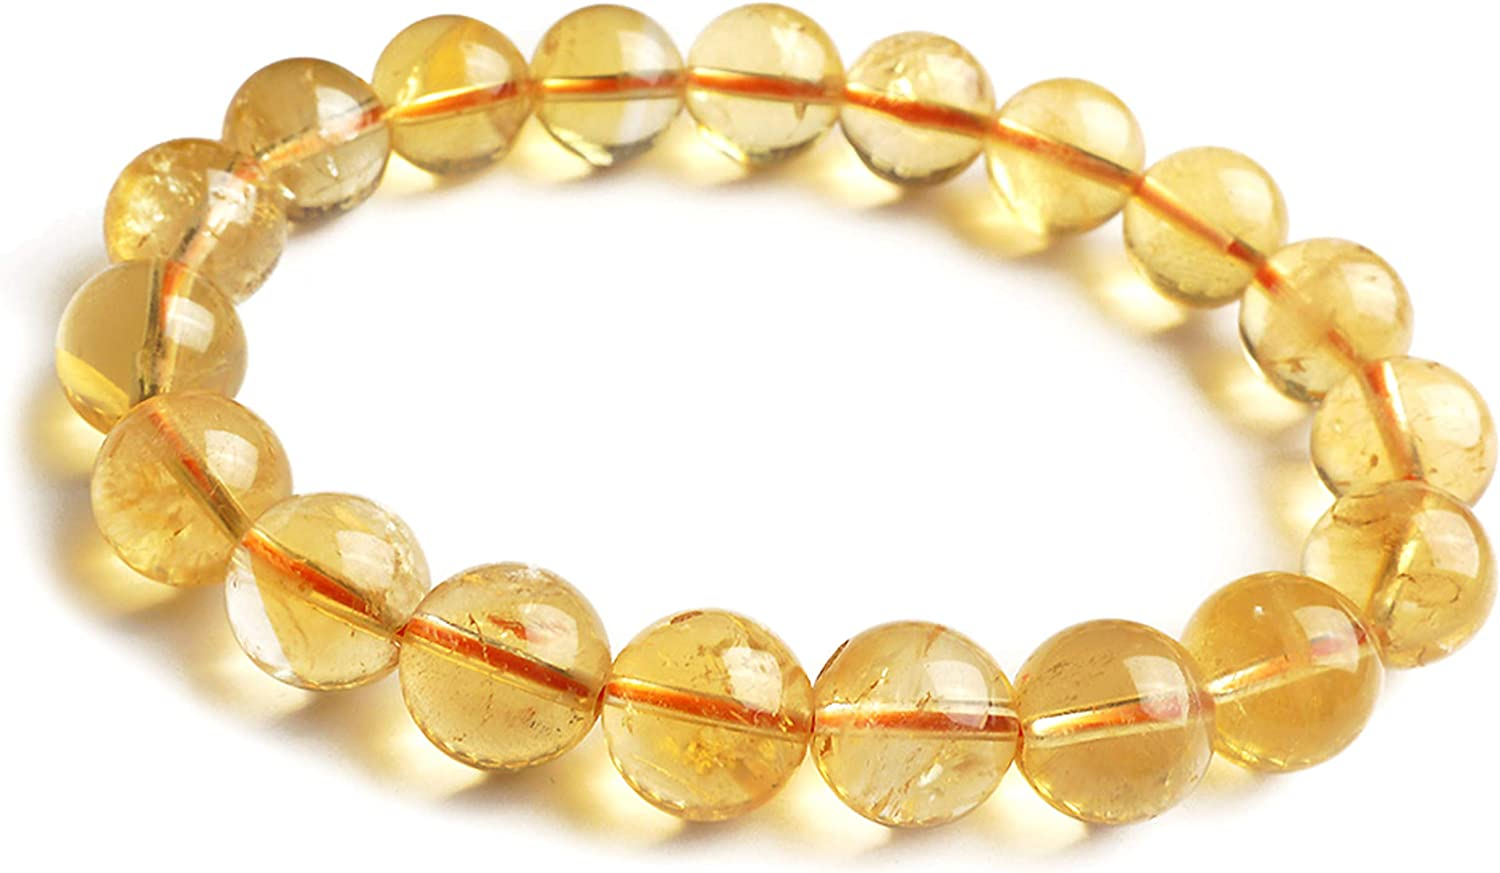 11mm Natural Ranking integrated 1st Ranking TOP19 place Yellow Citrine Quartz Crystal S Round Bead Gemstone